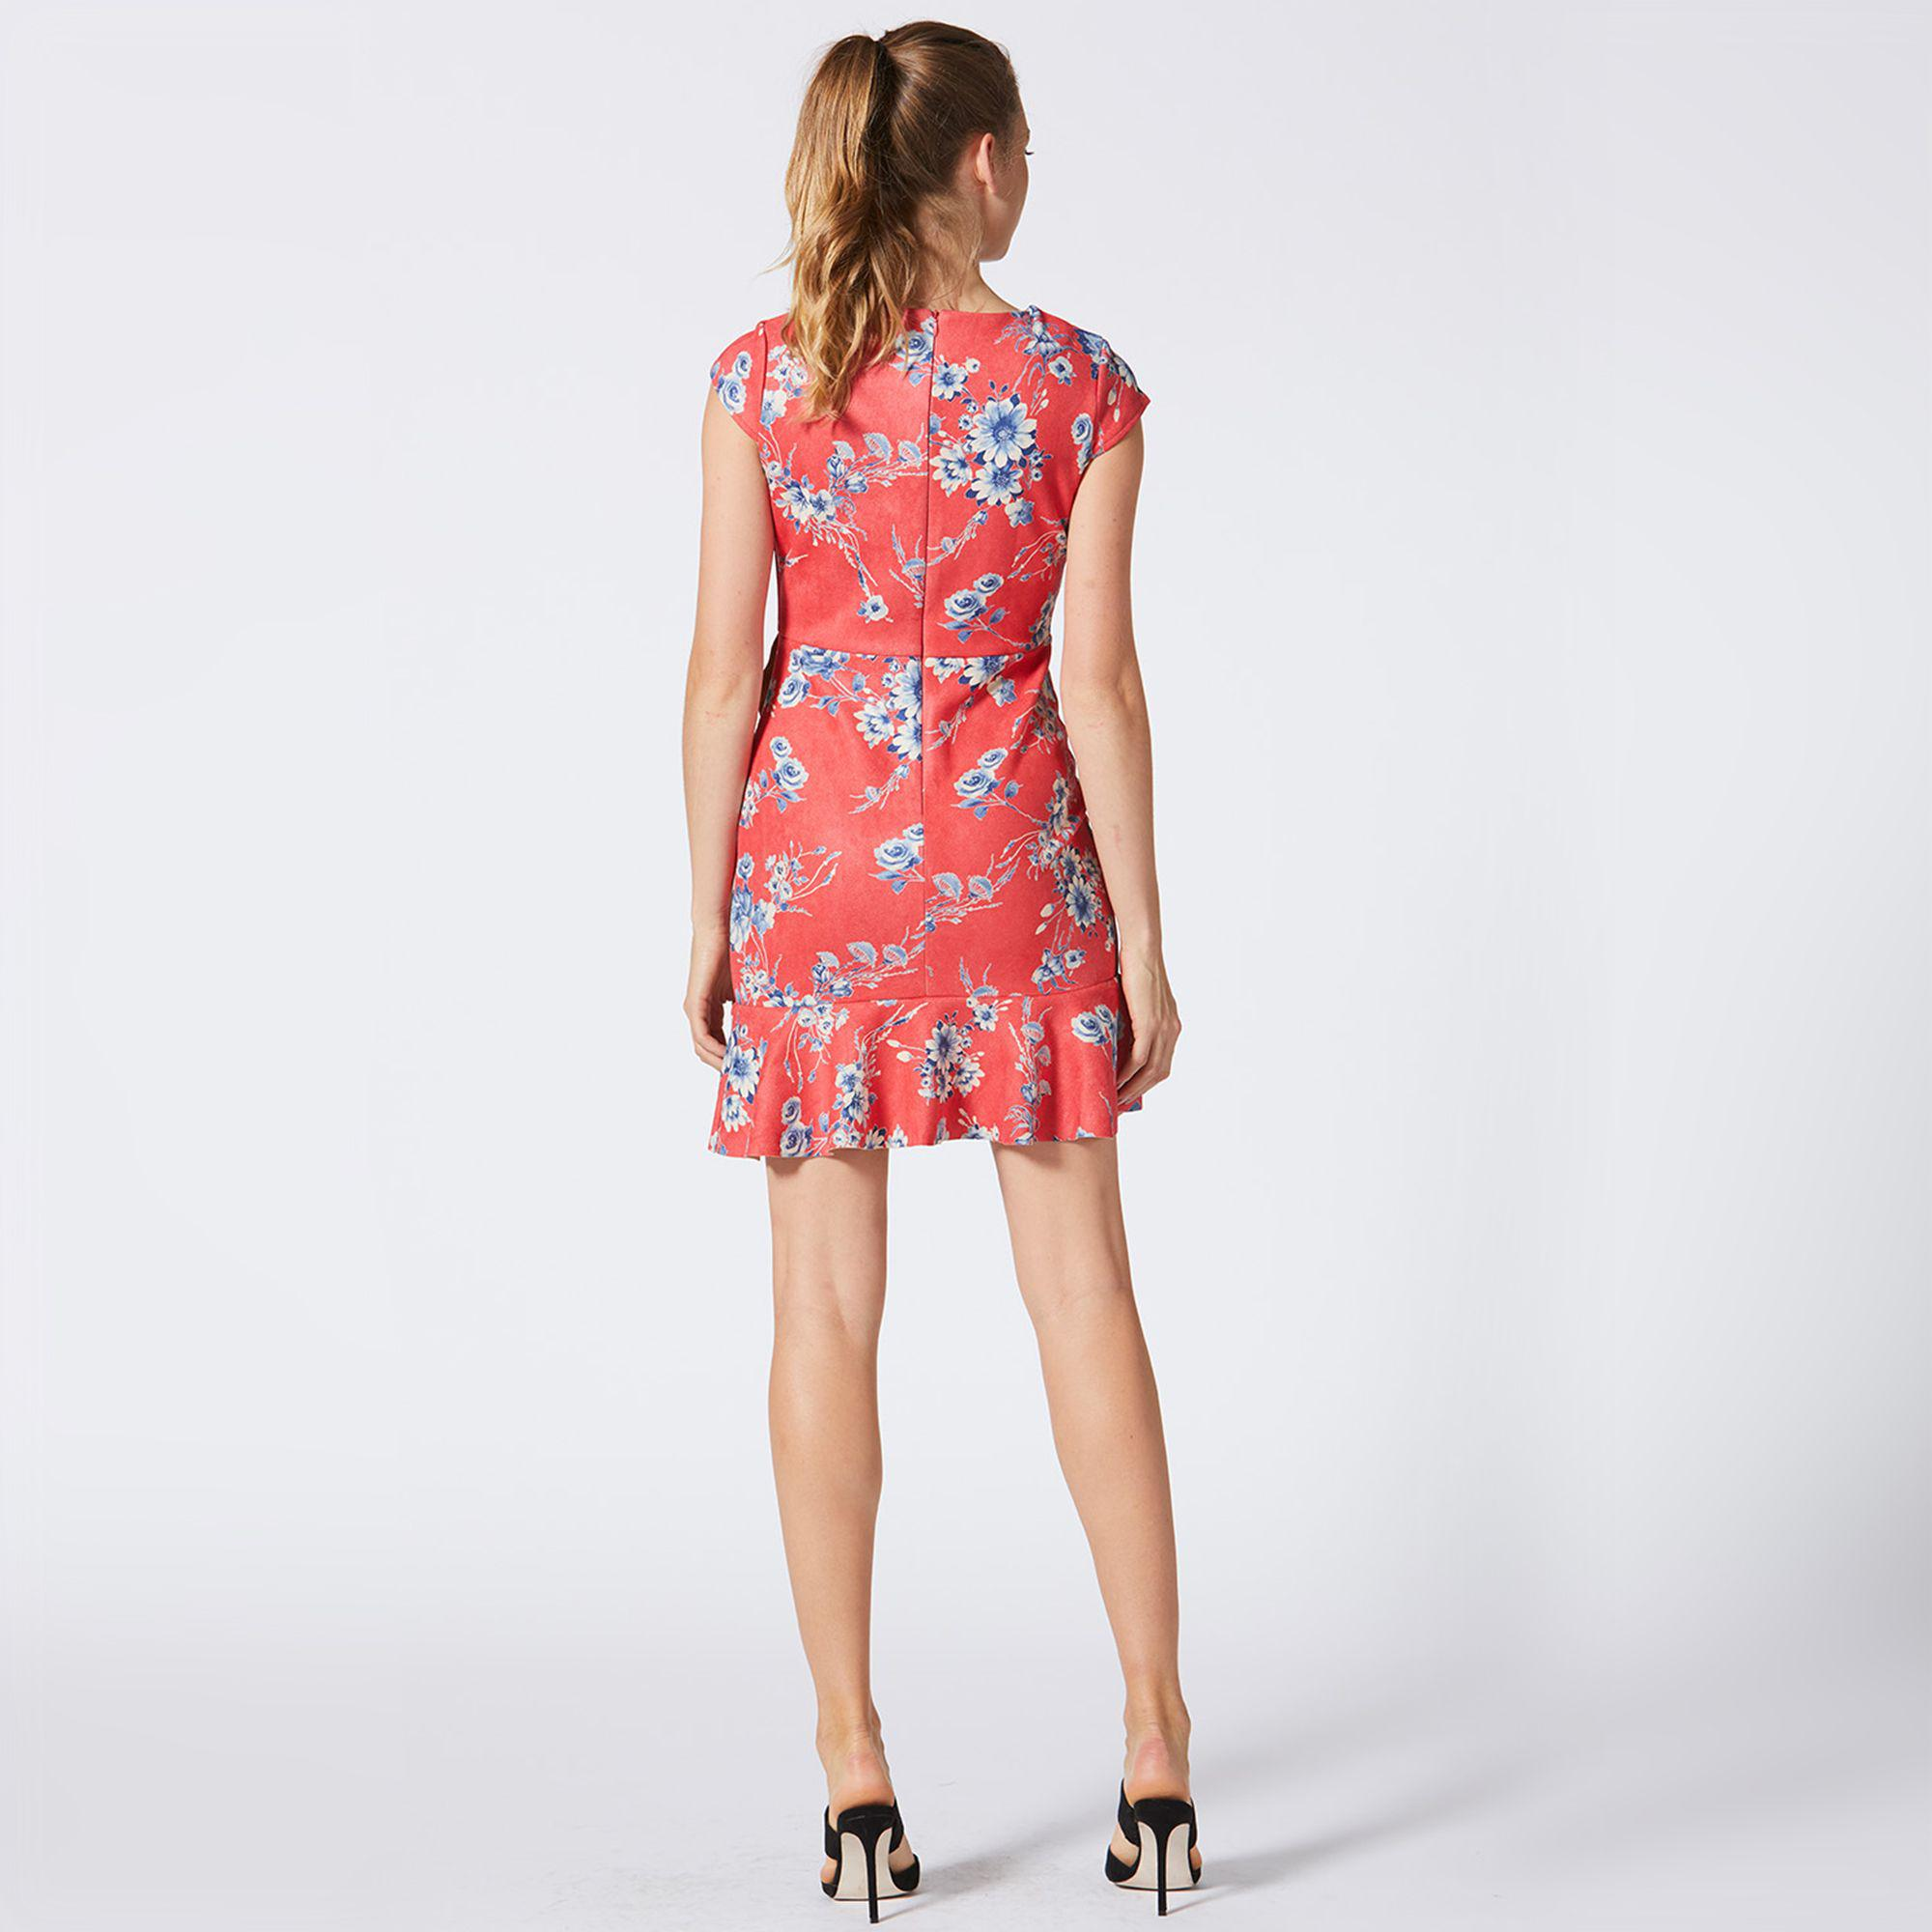 e11160de2d52 ... Floral Suede Ruffled Fit And Flare Dress - Lyst. View fullscreen